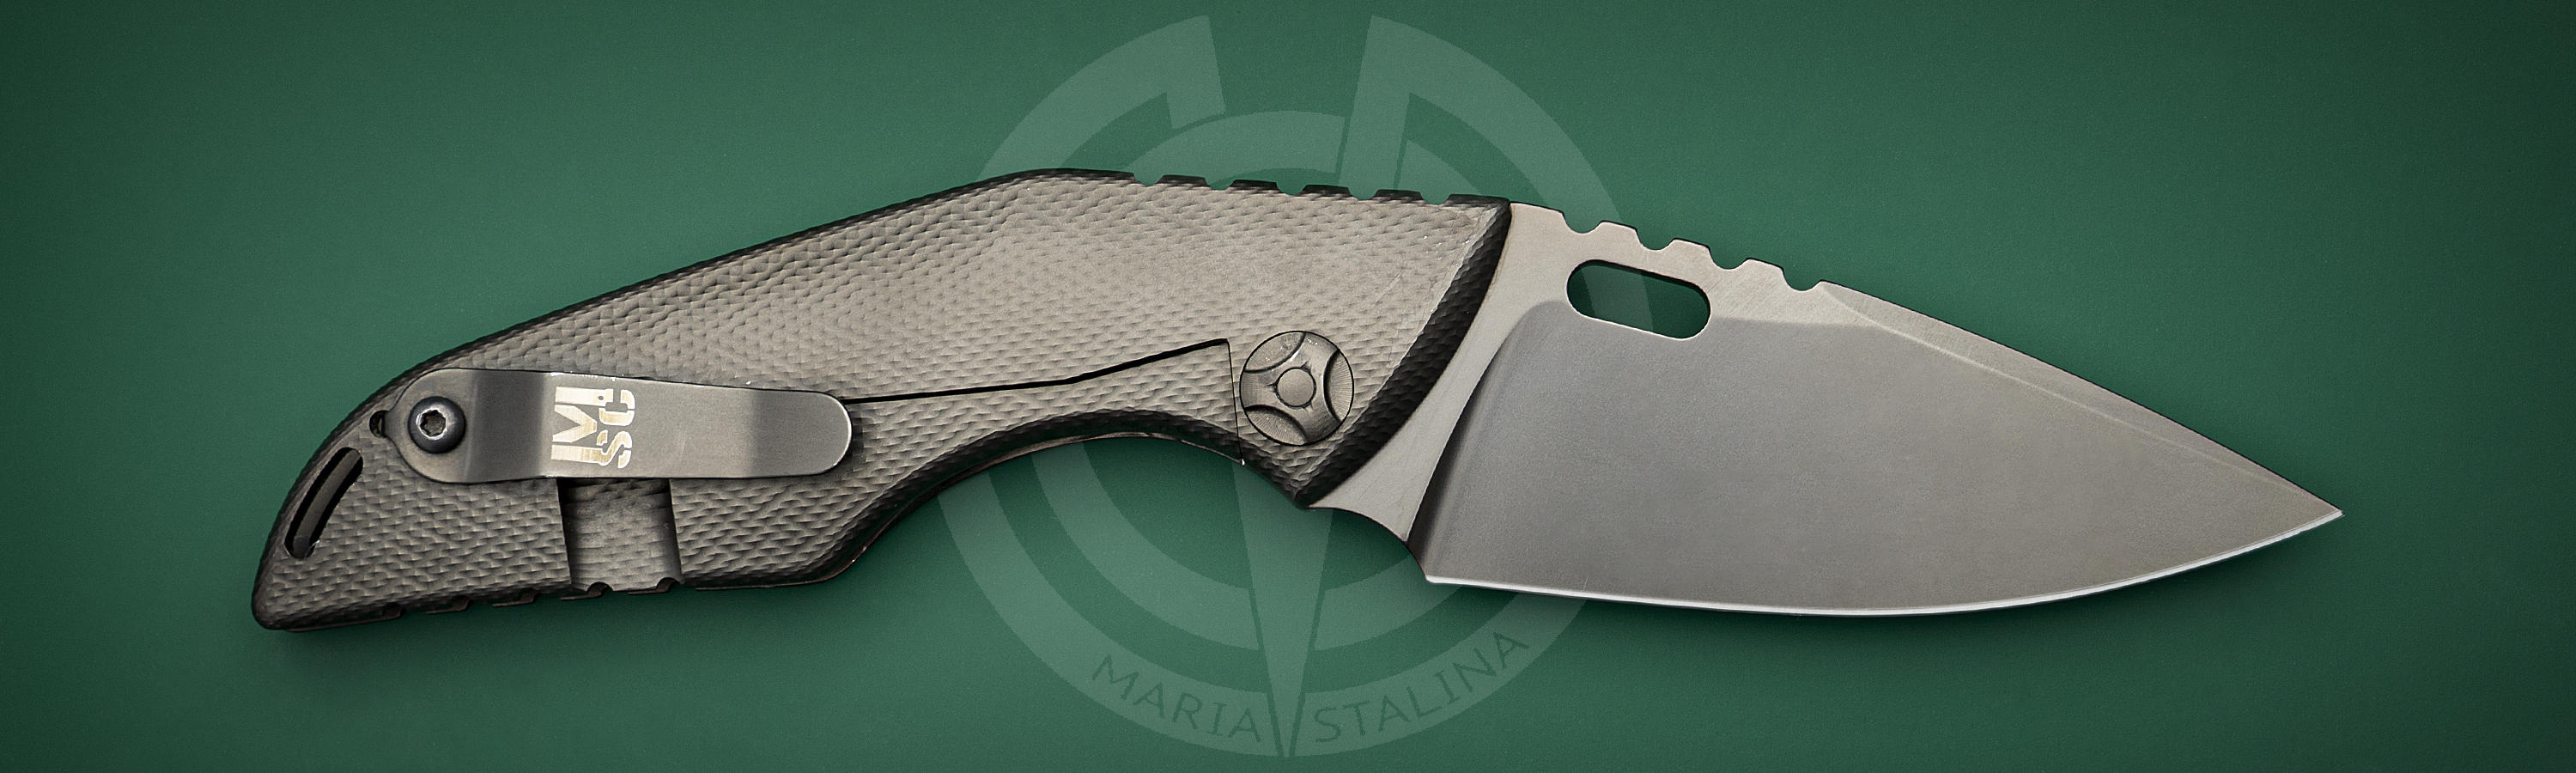 Blade material: S35VN